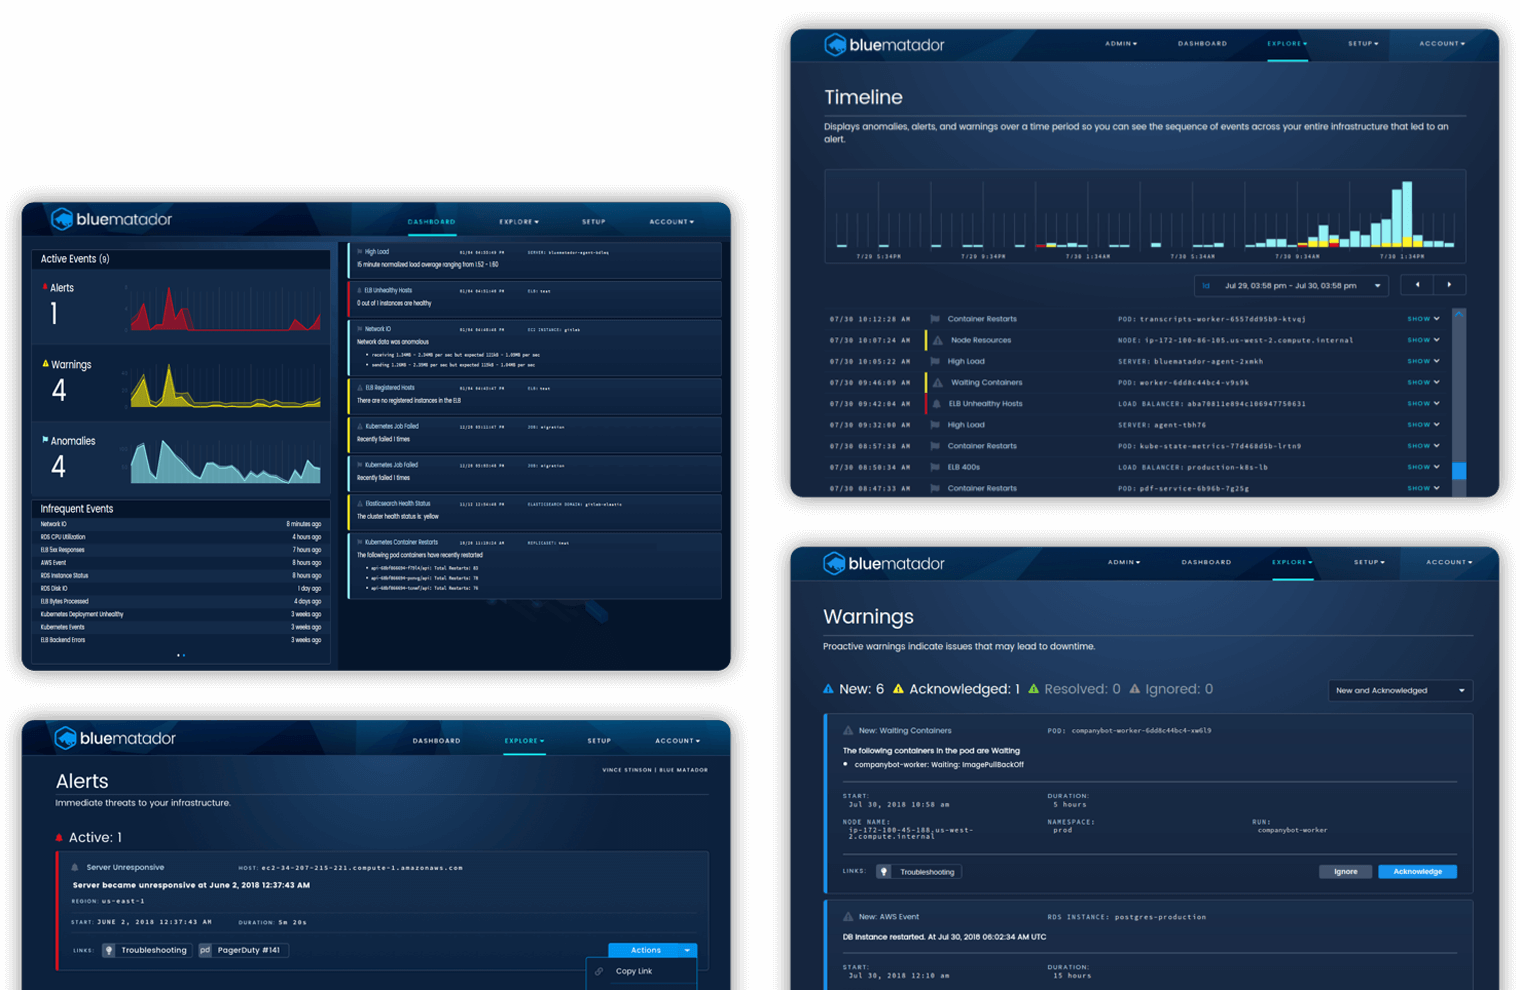 Blue Matador has multiple dashboards for proactive monitoring